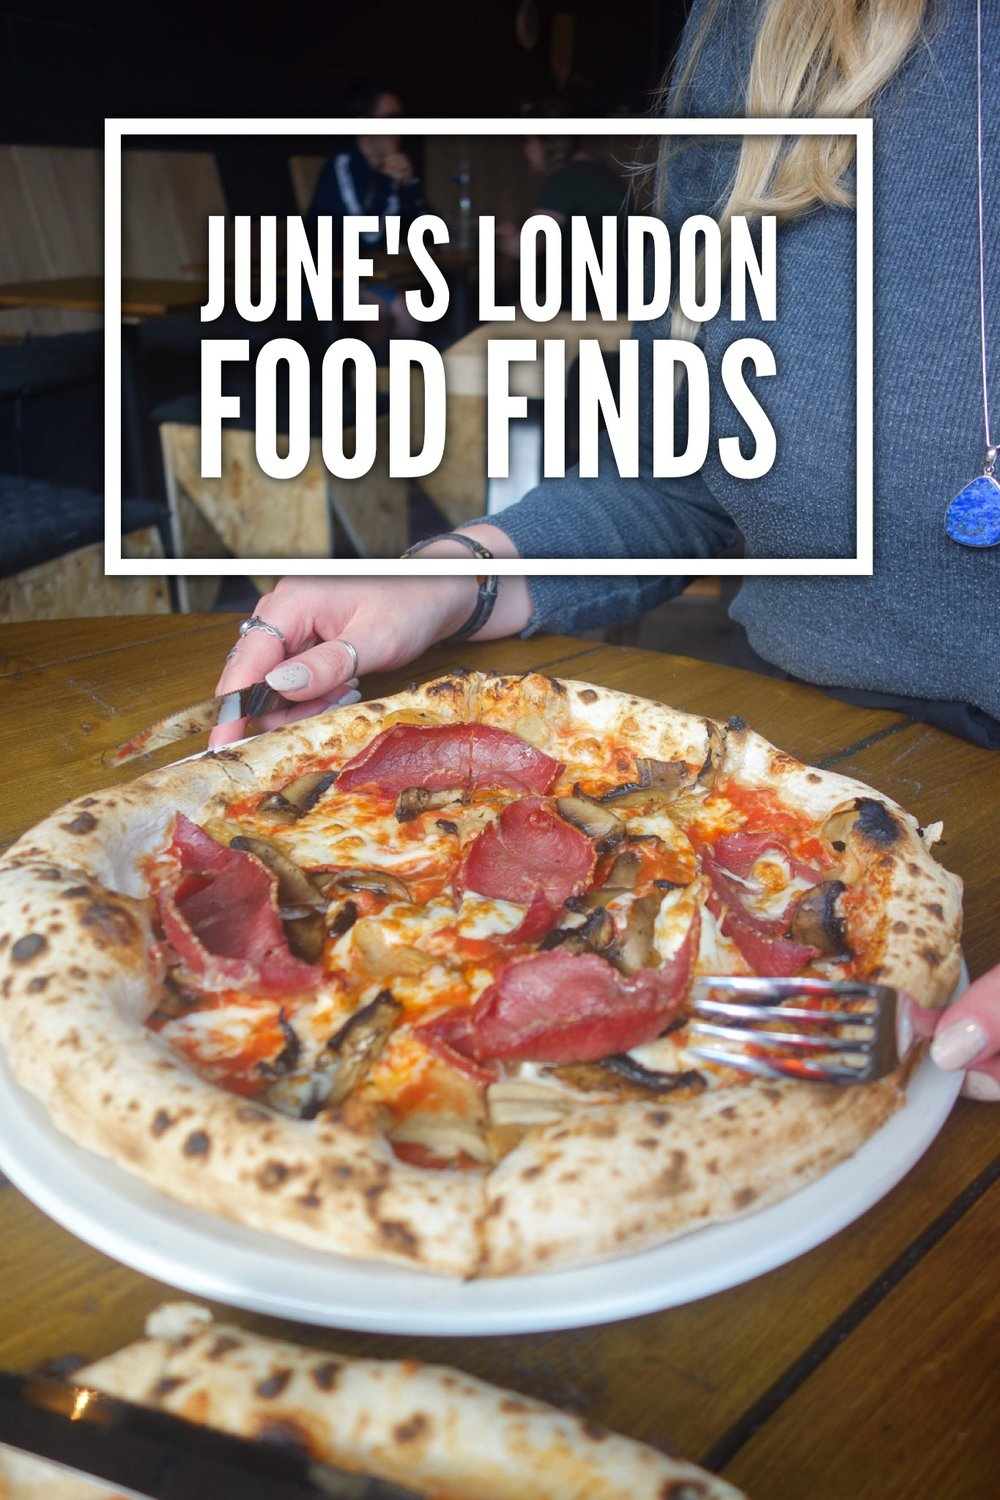 June notsobasiclondon news